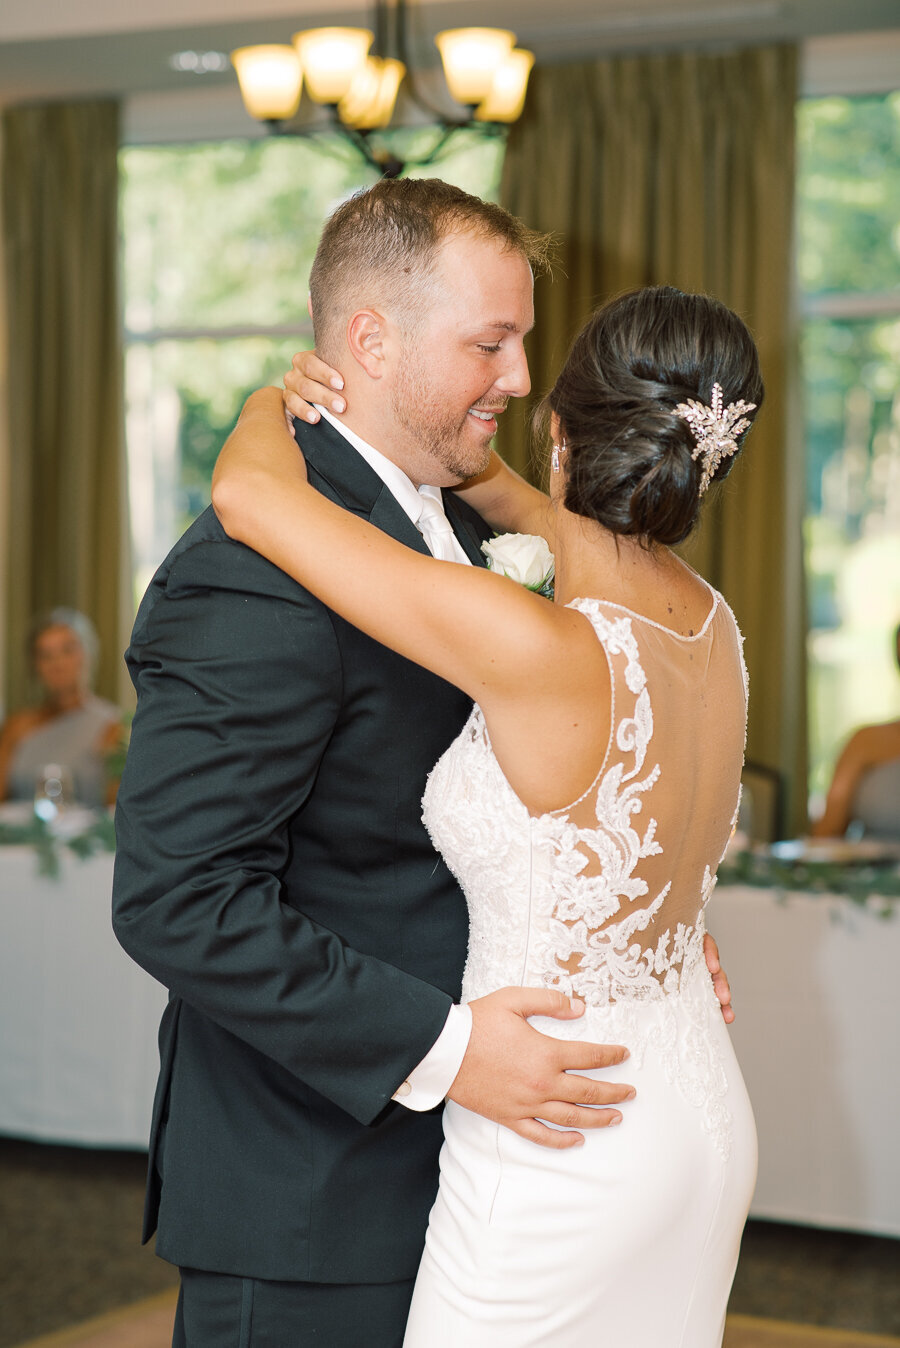 Prospect_Bay_Country_Club_Wedding_Maryland_Megan_Harris_Photography-47